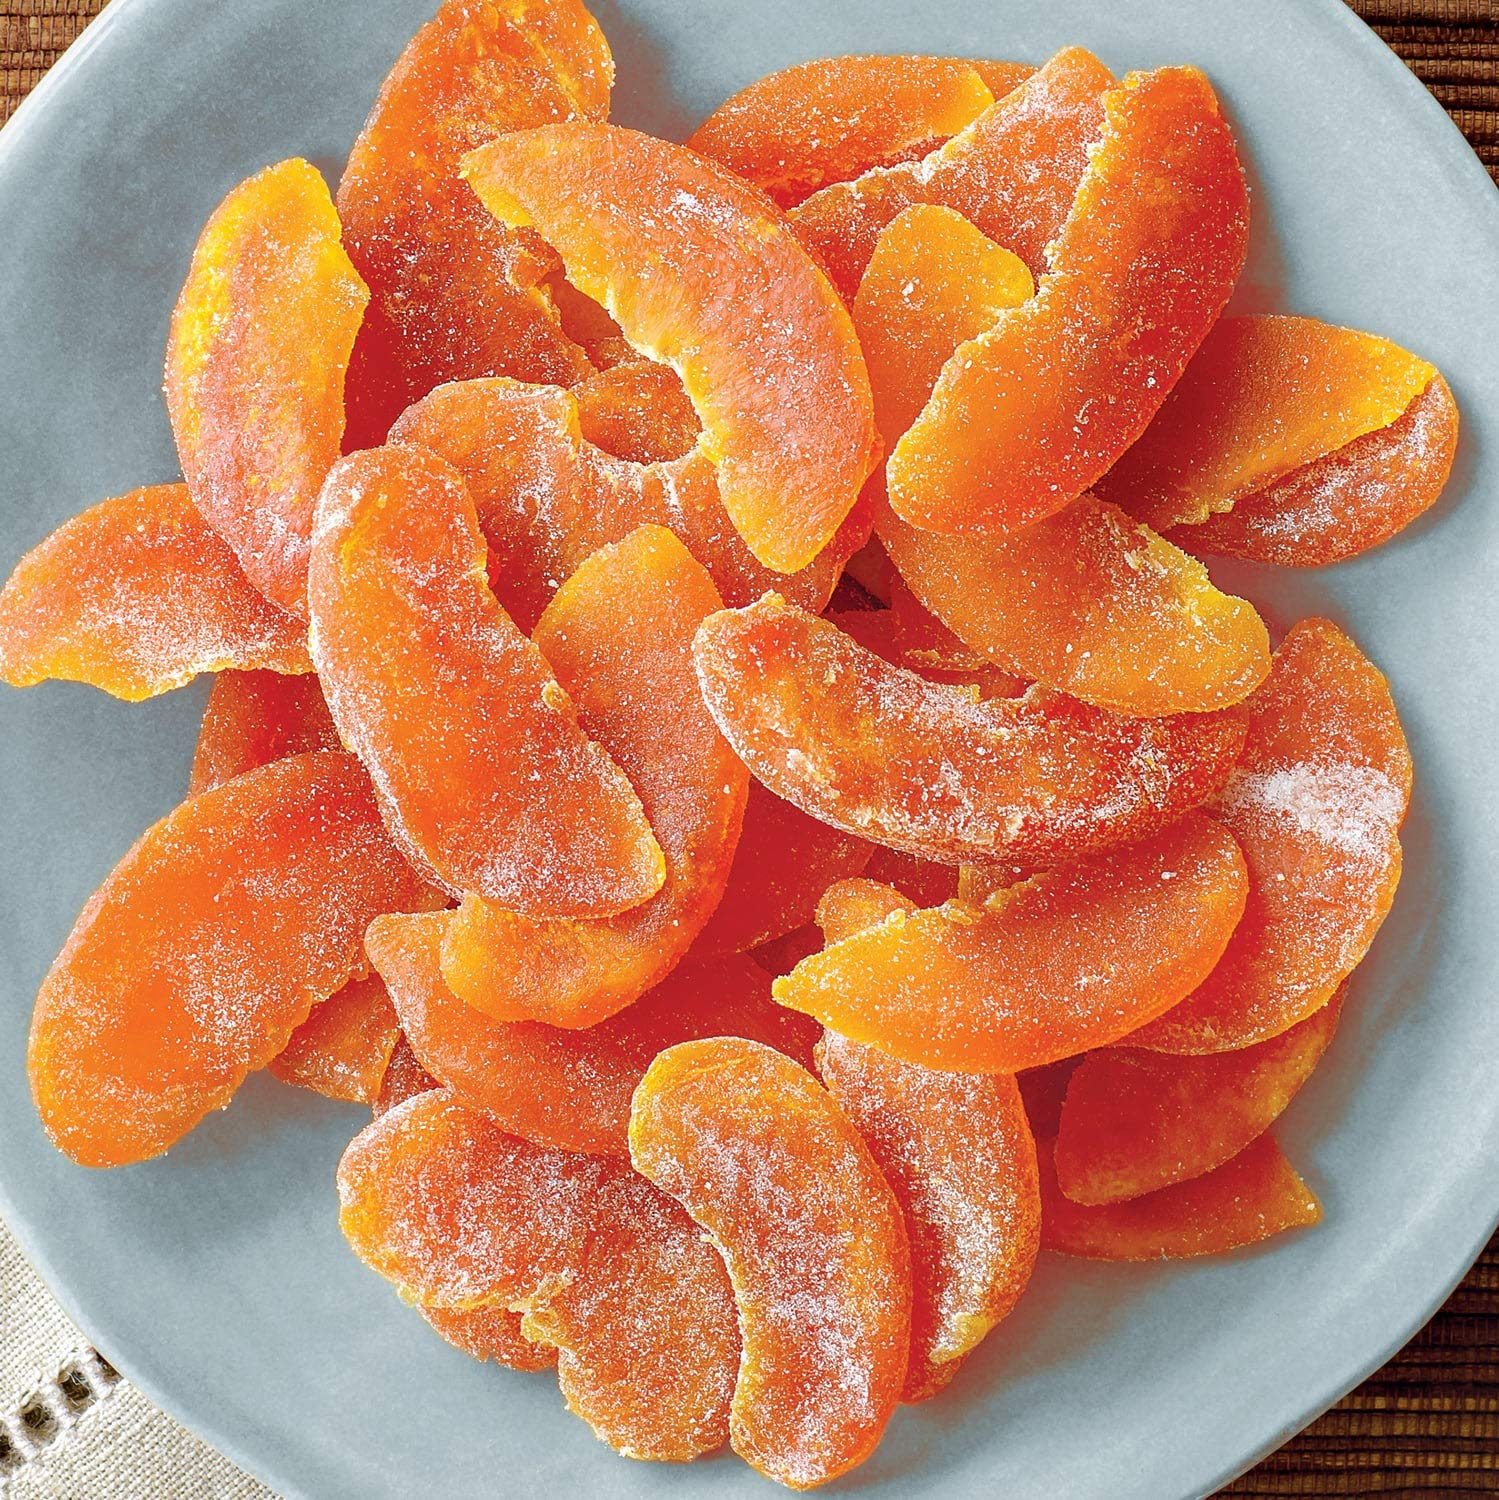 Gourmet Dried Peaches - Harvest Pride Peaches (5 lb Box) by Meduri World Delights